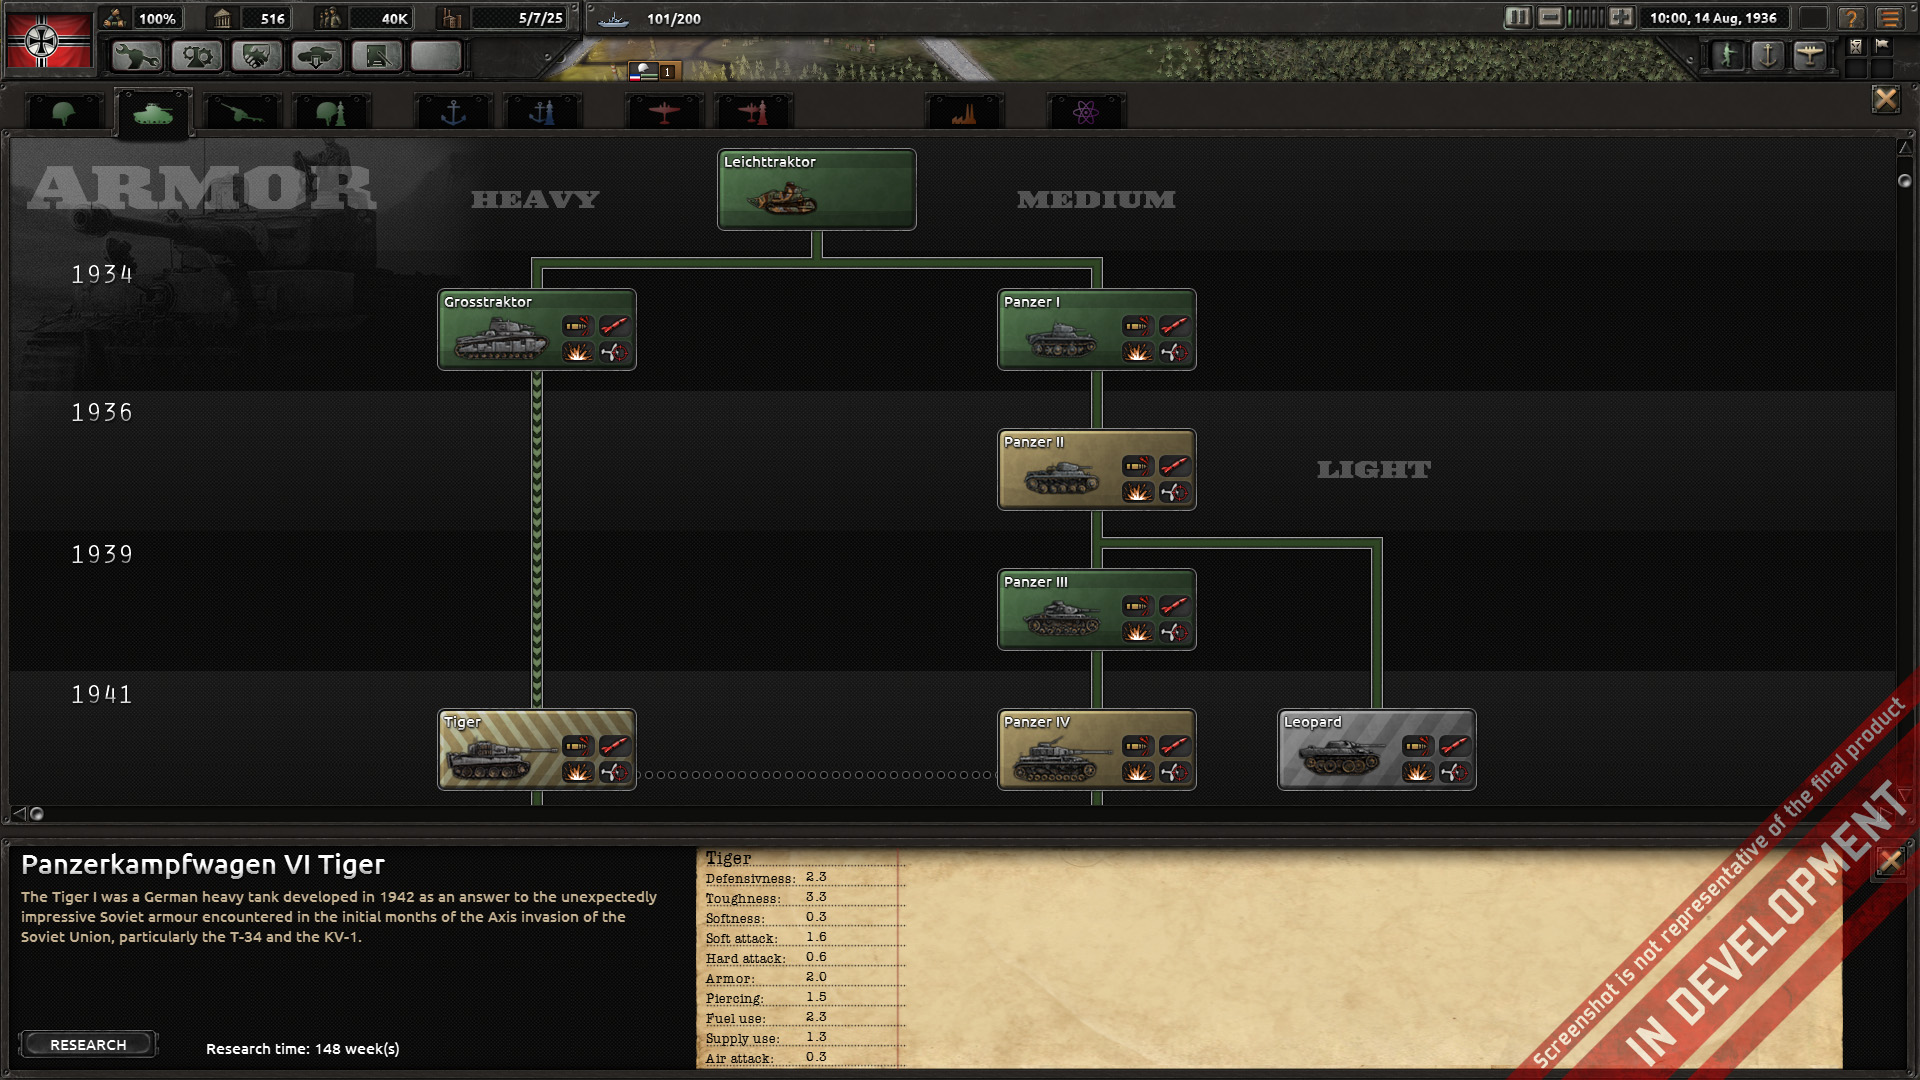 Hearts of iron 4 release date